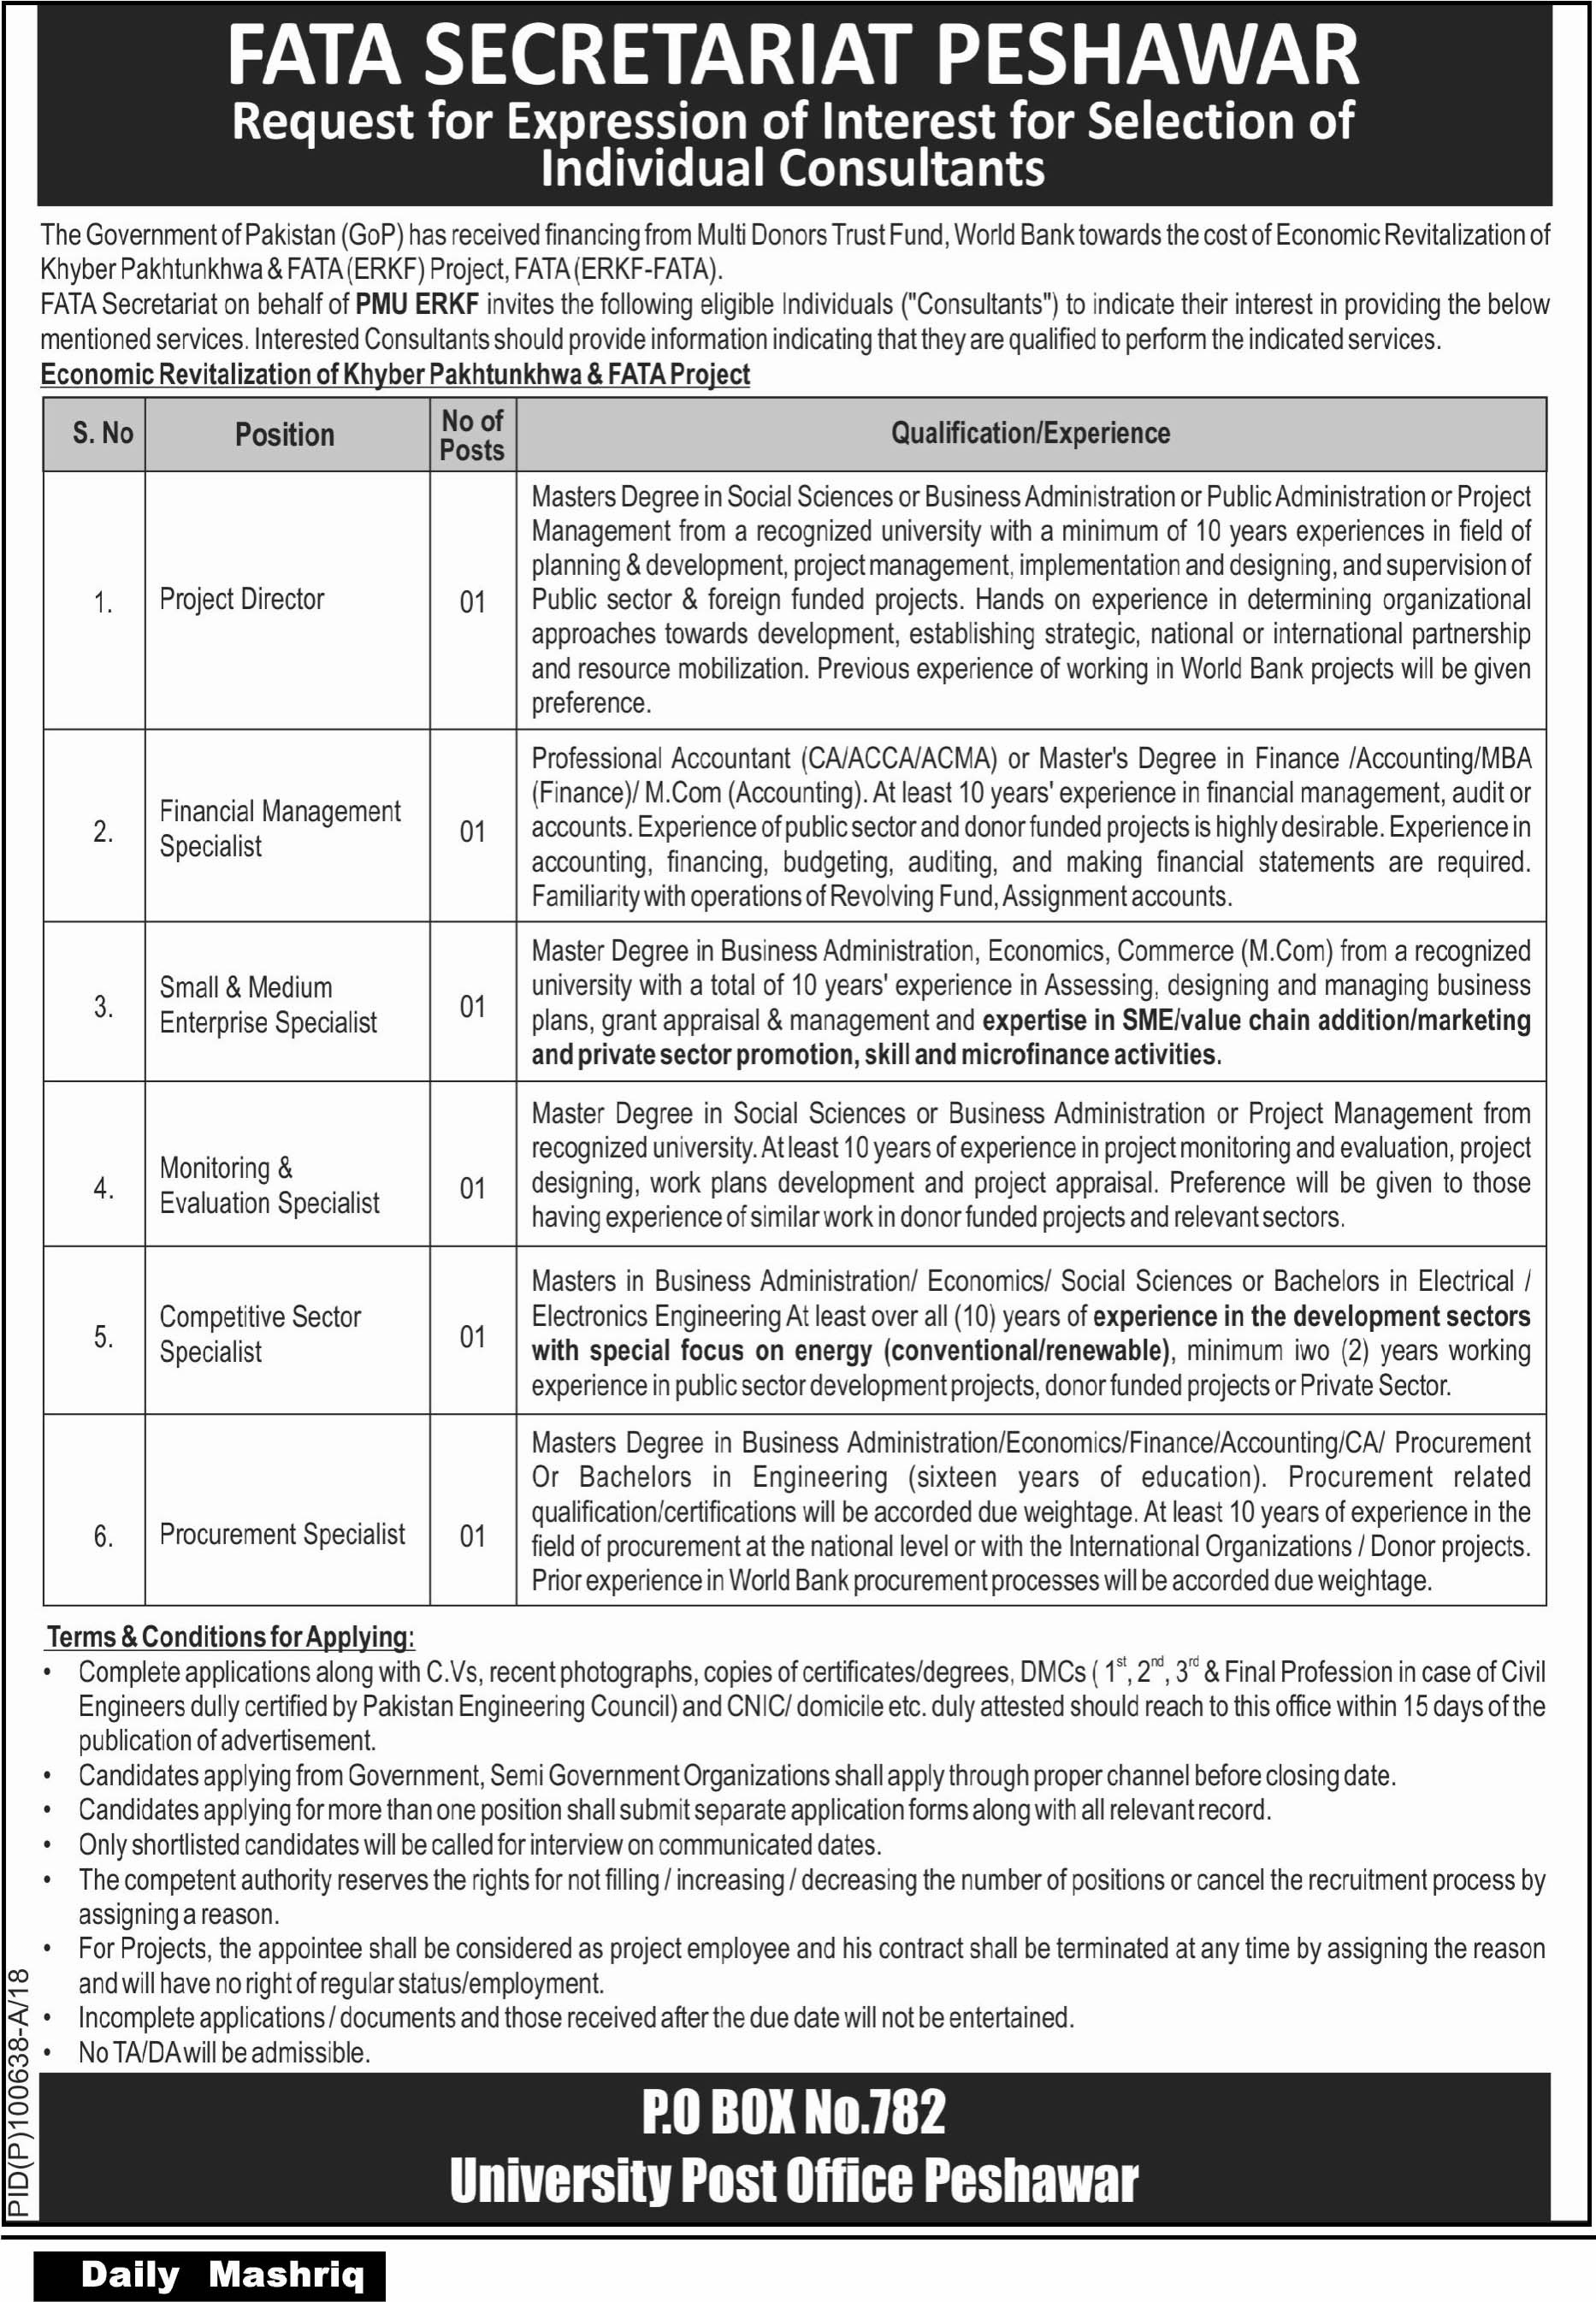 FATA Secretariat Jobs Daily Mashriq Newspaper 21 March 2018